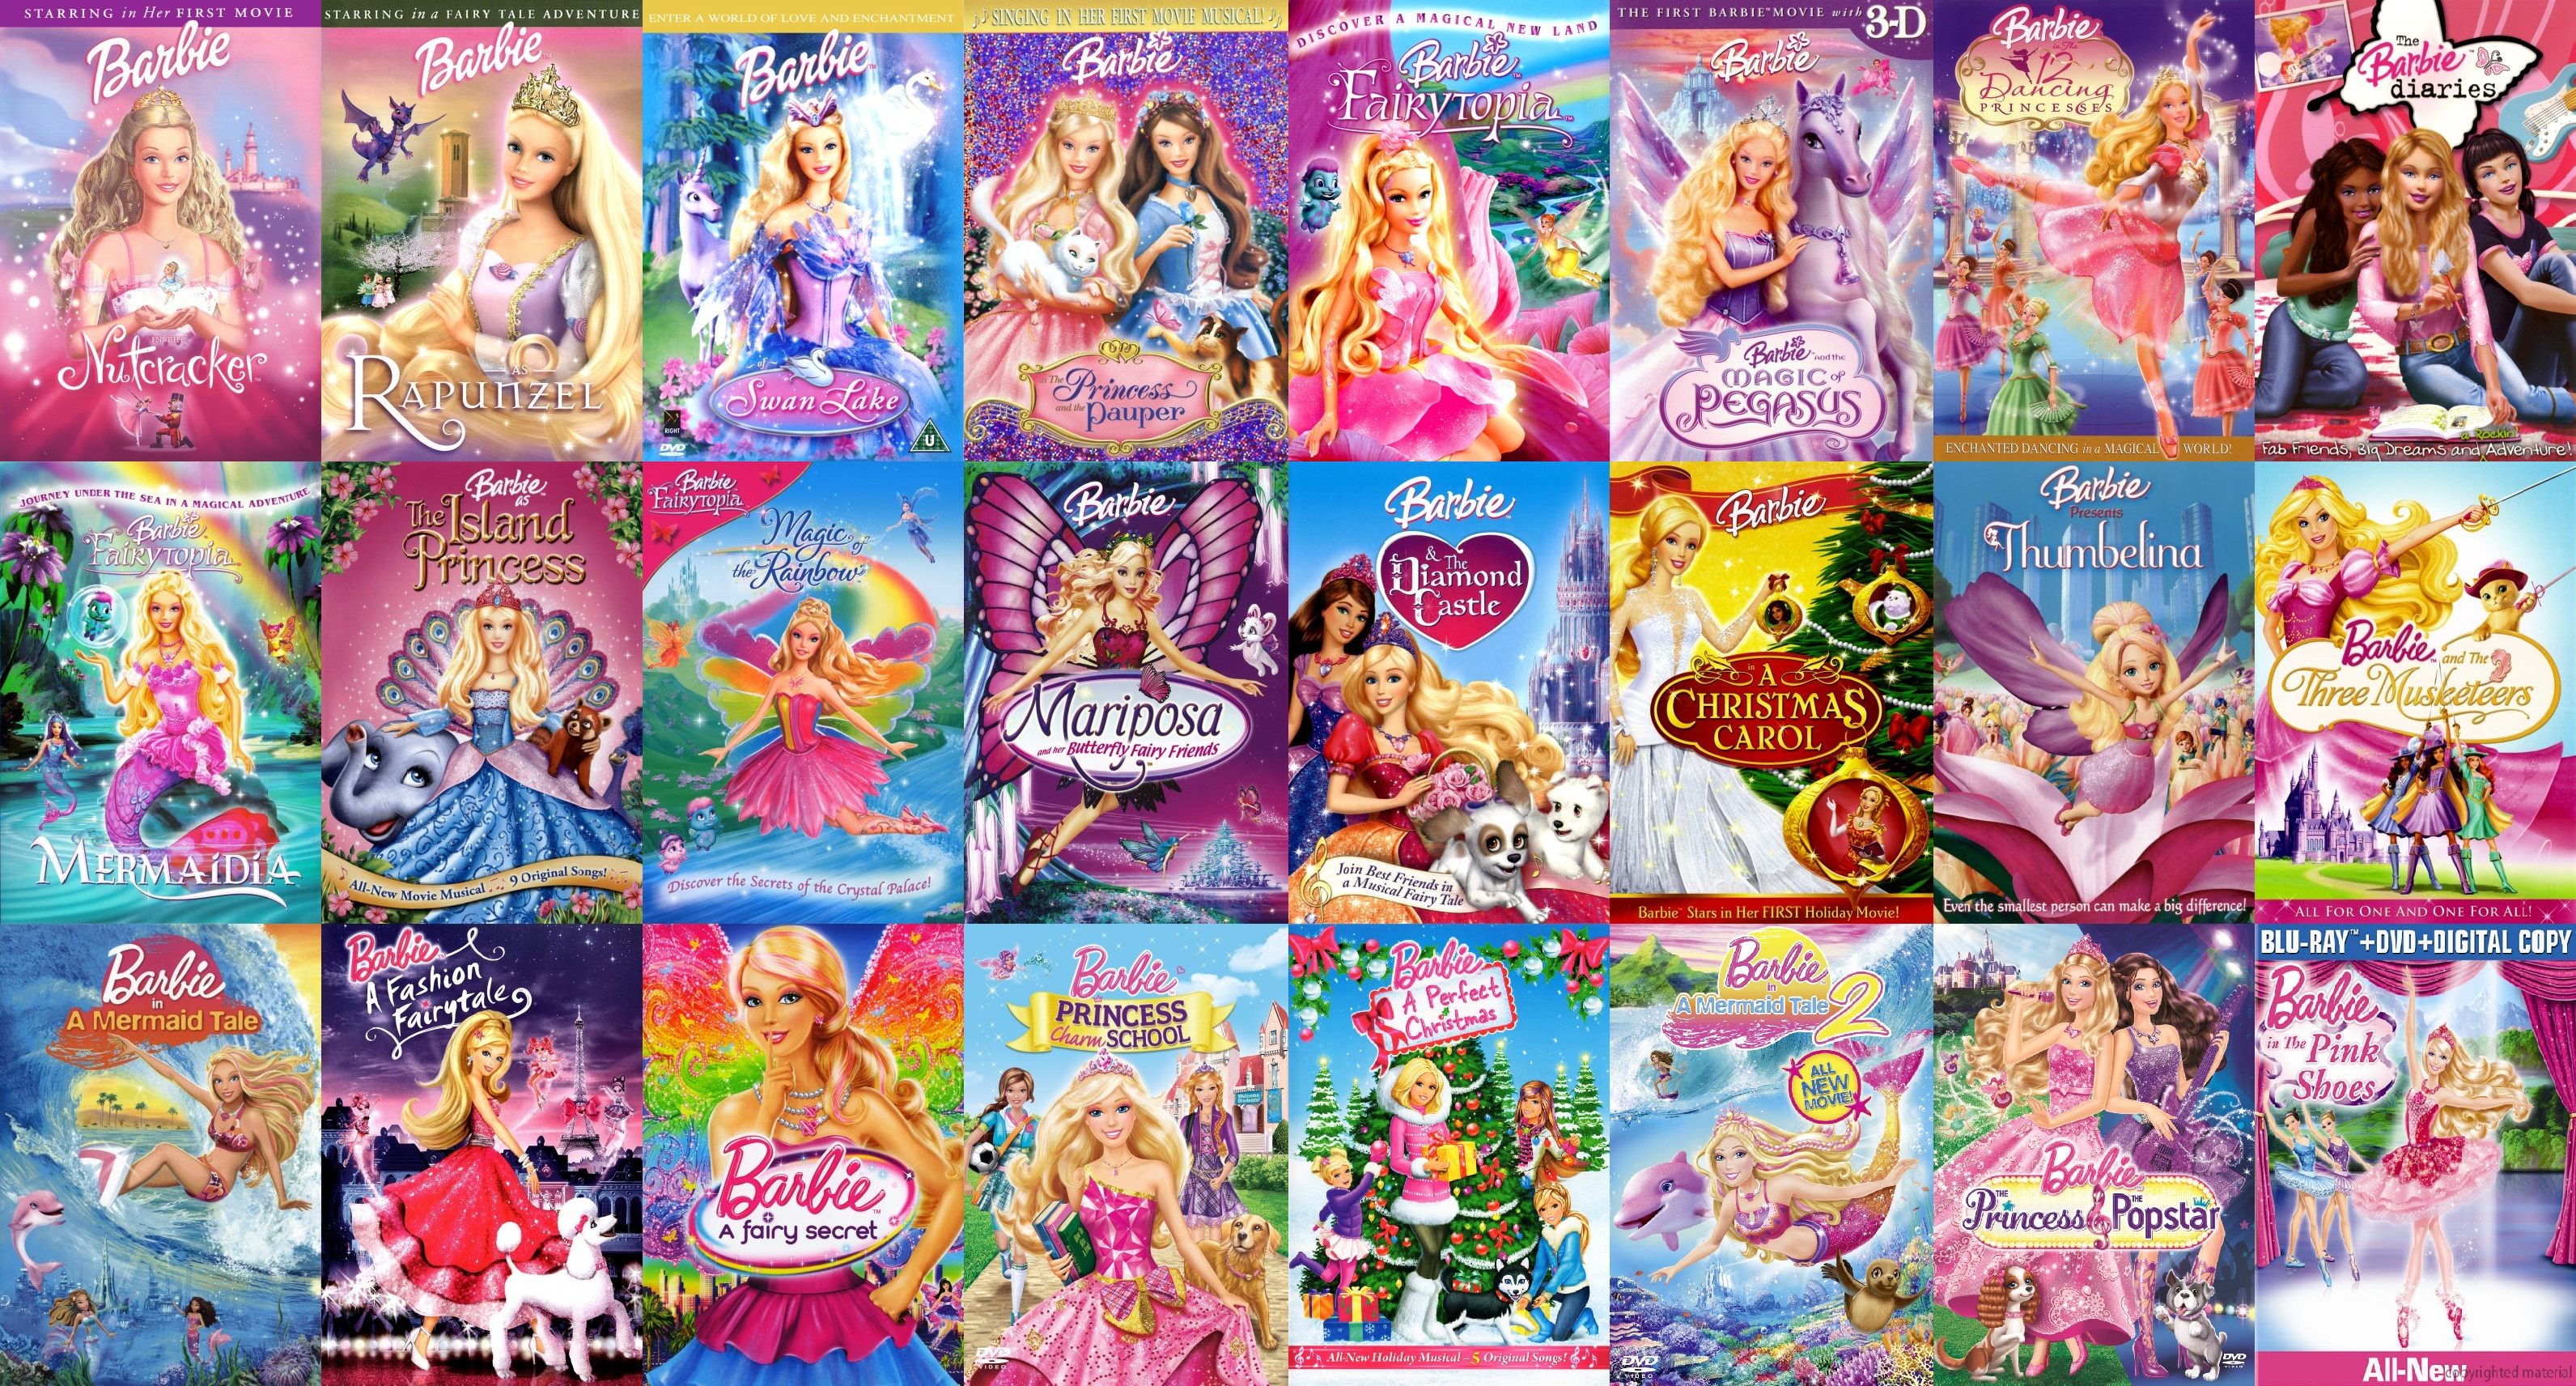 Barbie Movies All Barbie movies